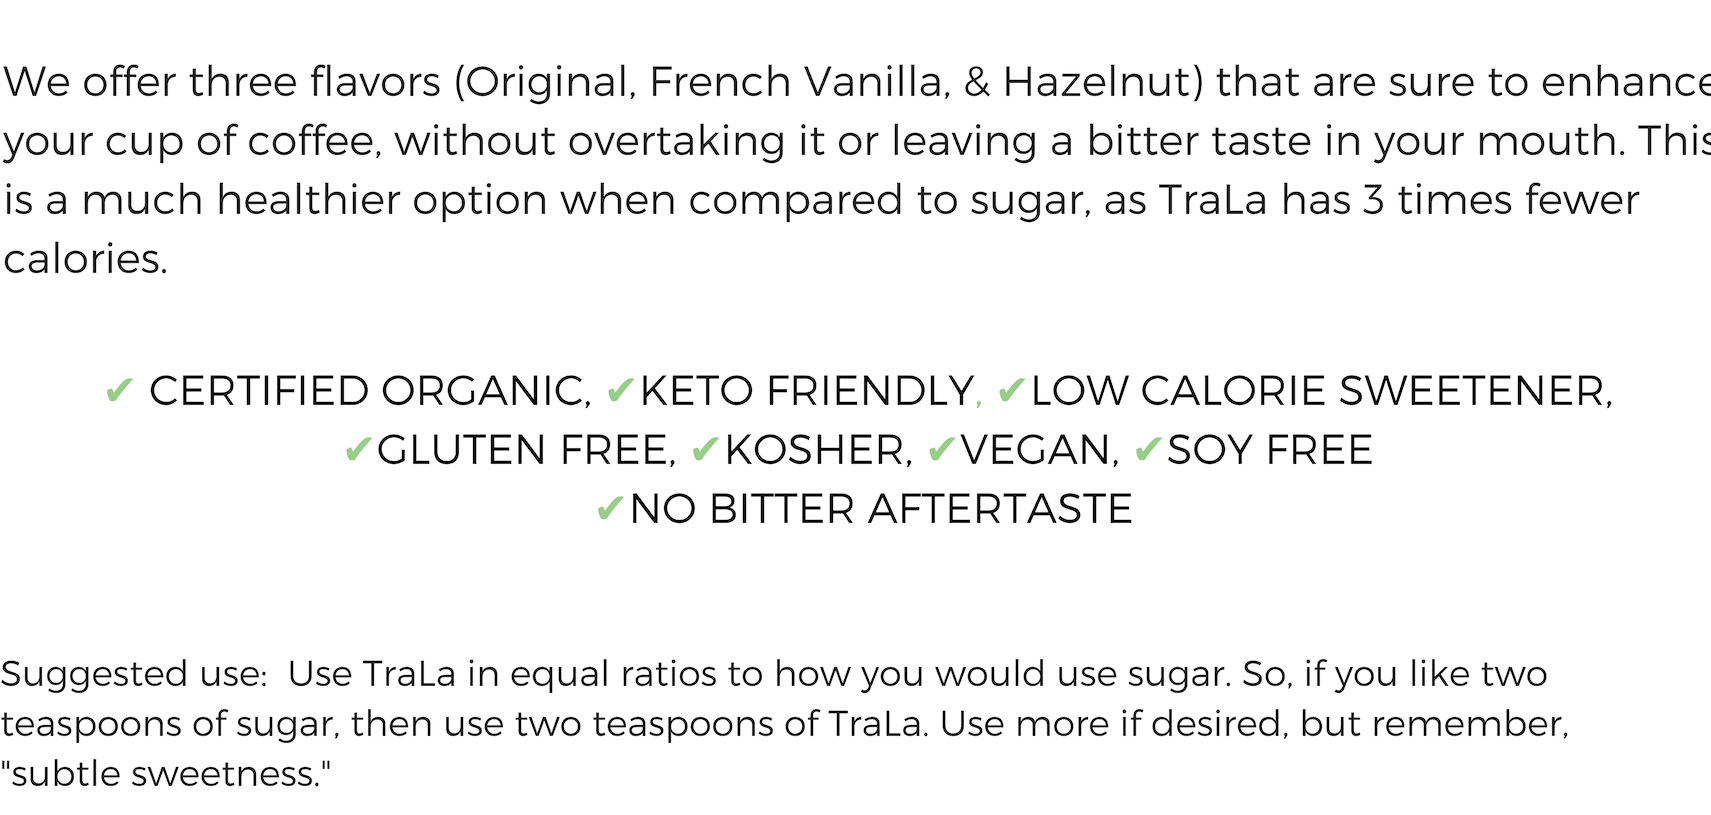 ORGANIC, GLUTEN FREE, KETO, VEGAN, SOY FREE KOSHER SWEETENER – TraLa Organic Coffee Sweetener is perfect for health conscious coffee lovers. TraLa organic coffee sweetener is harvested from a vegetable grown in Peru. Only one ingredient and 100% organic! TraLa organic is a Low calorie Sweetener with No Bitter Aftertaste - TraLa contains three times fewer calories than sugar! There are no additives, chemicals, or bitter aftertaste.